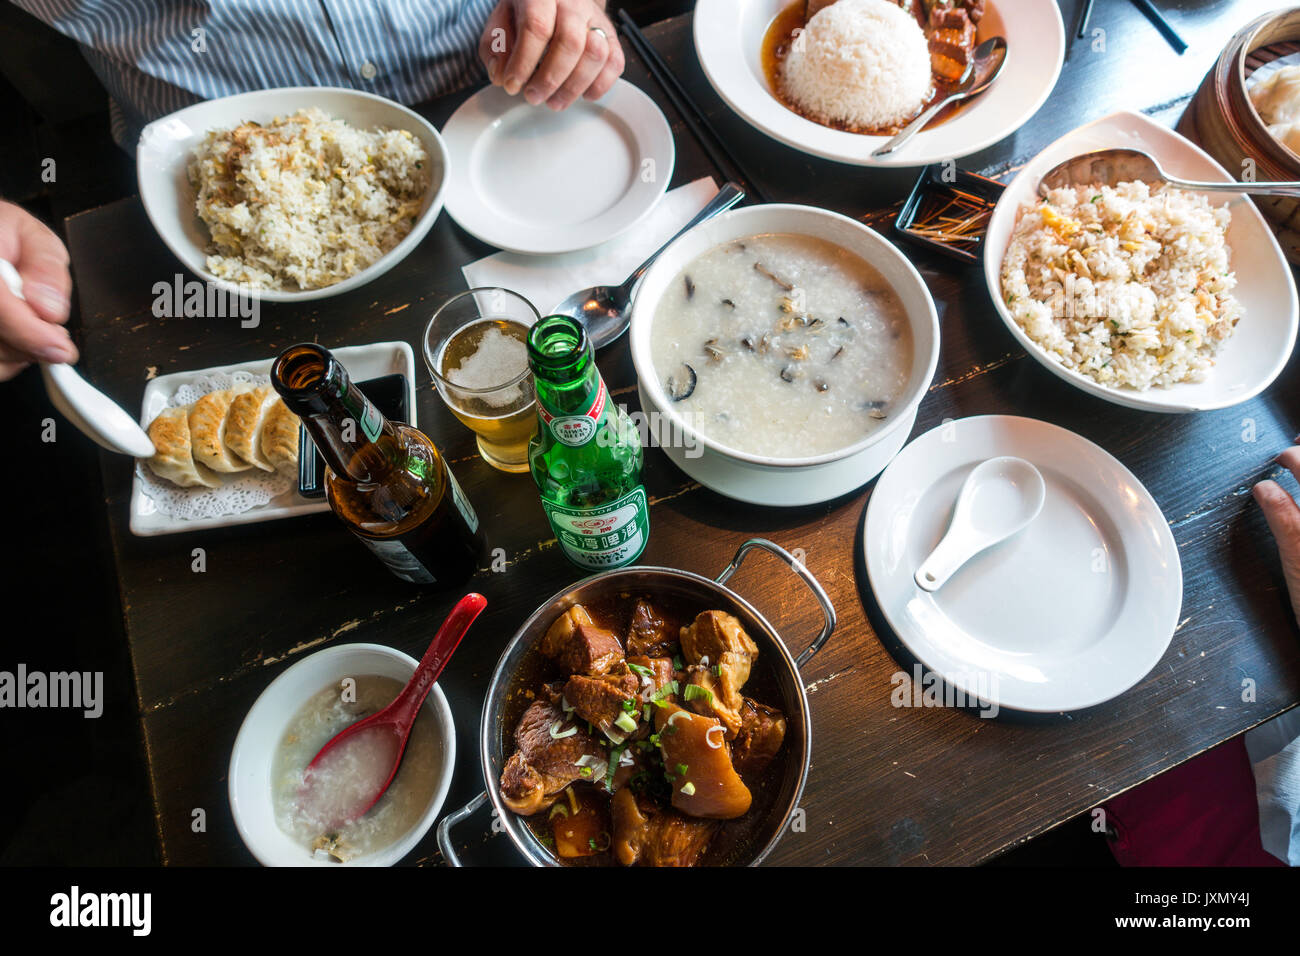 Leongs legend, Chinatown, London, multiple dishes on the lunchtime table including beer, oyster congee ,fried rice, pork bellies, chicken dumpling - Stock Image